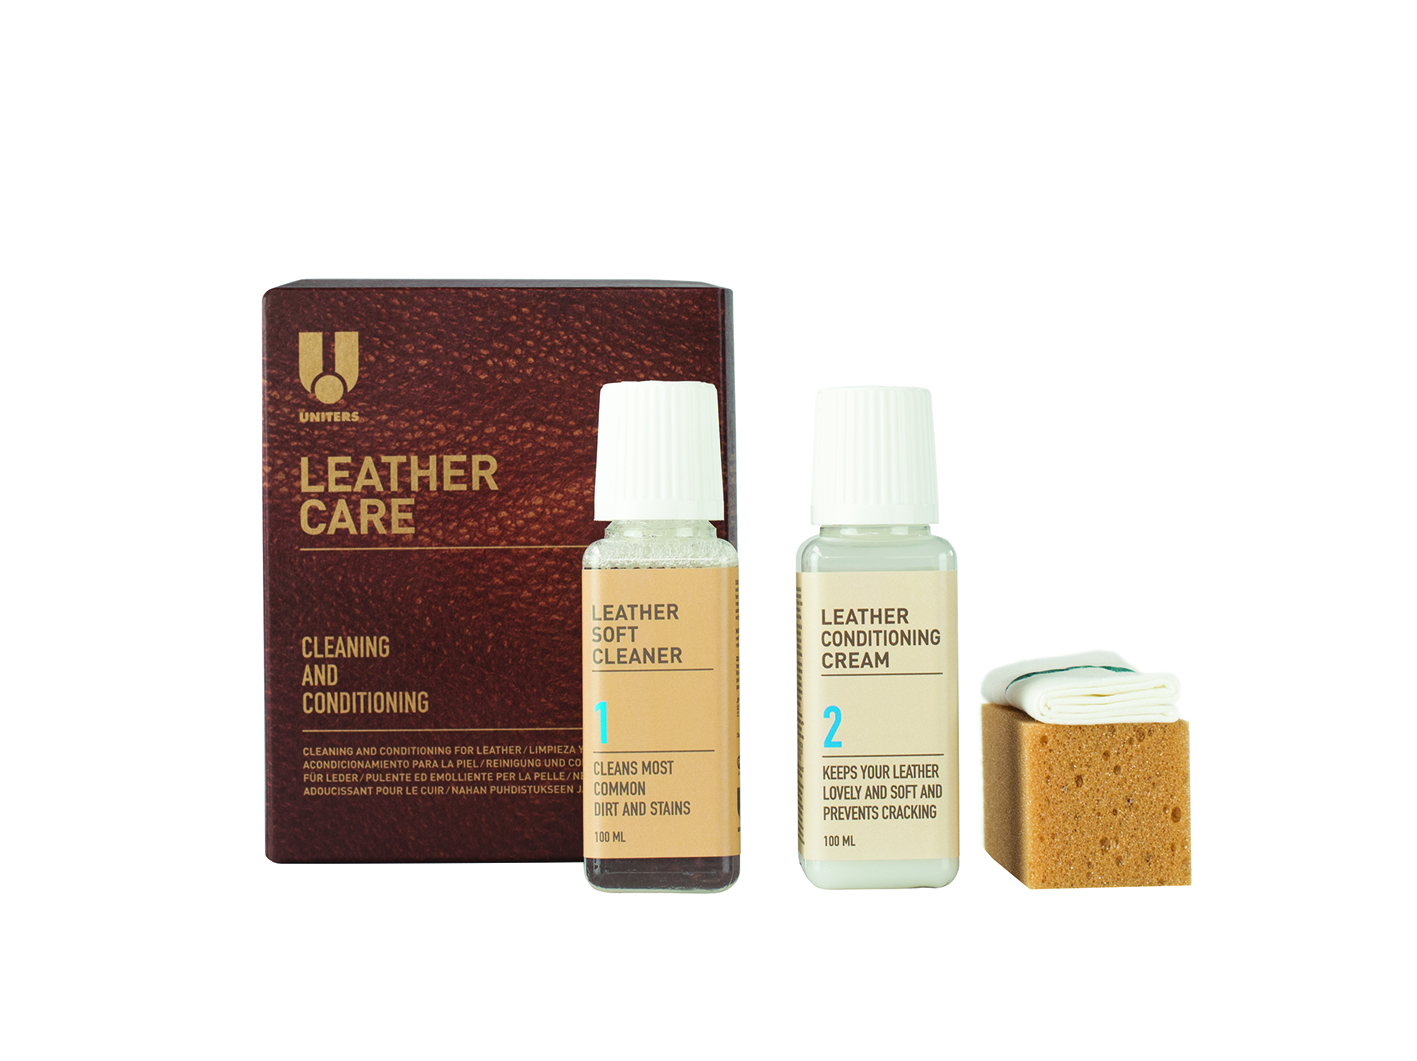 LEATHER CARE KIT MINI